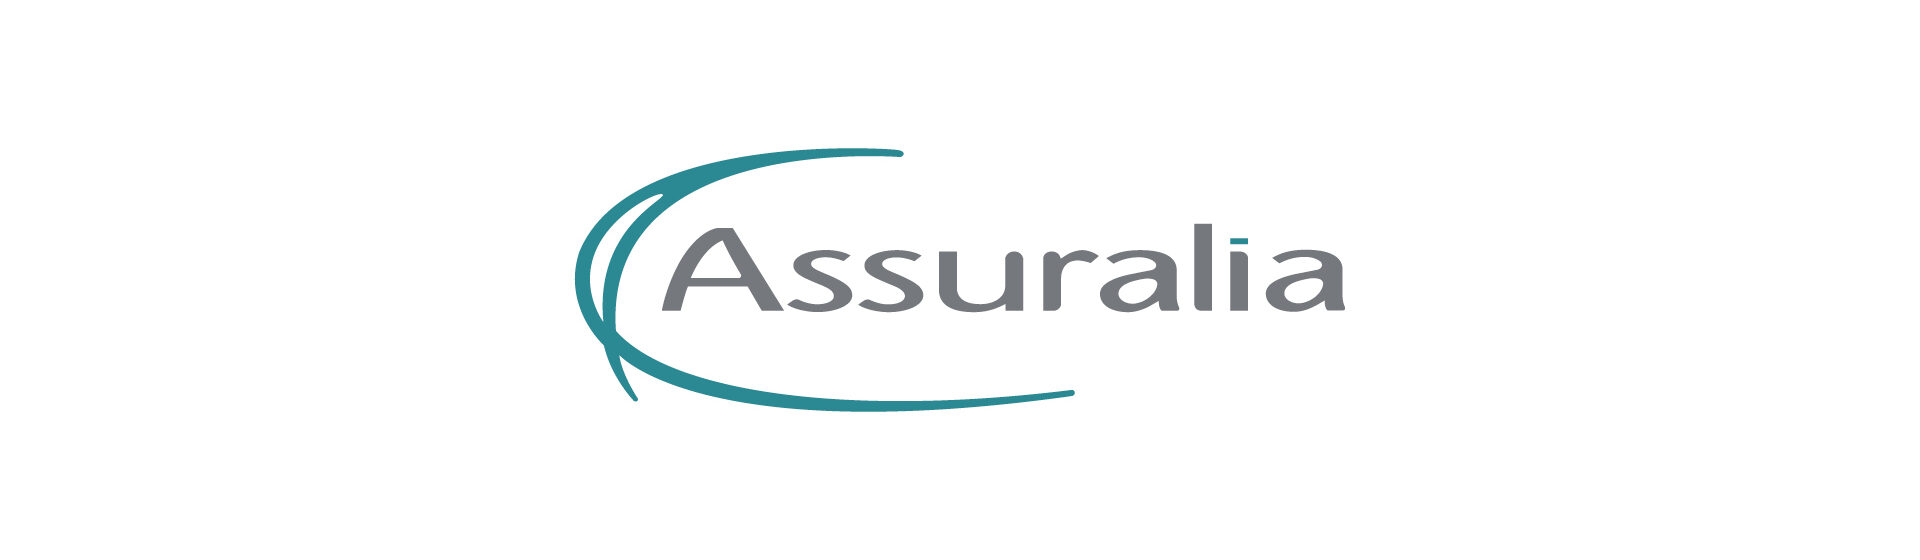 Attractiveness for investments thanks to the advantages of  financial insurance – Assuralia